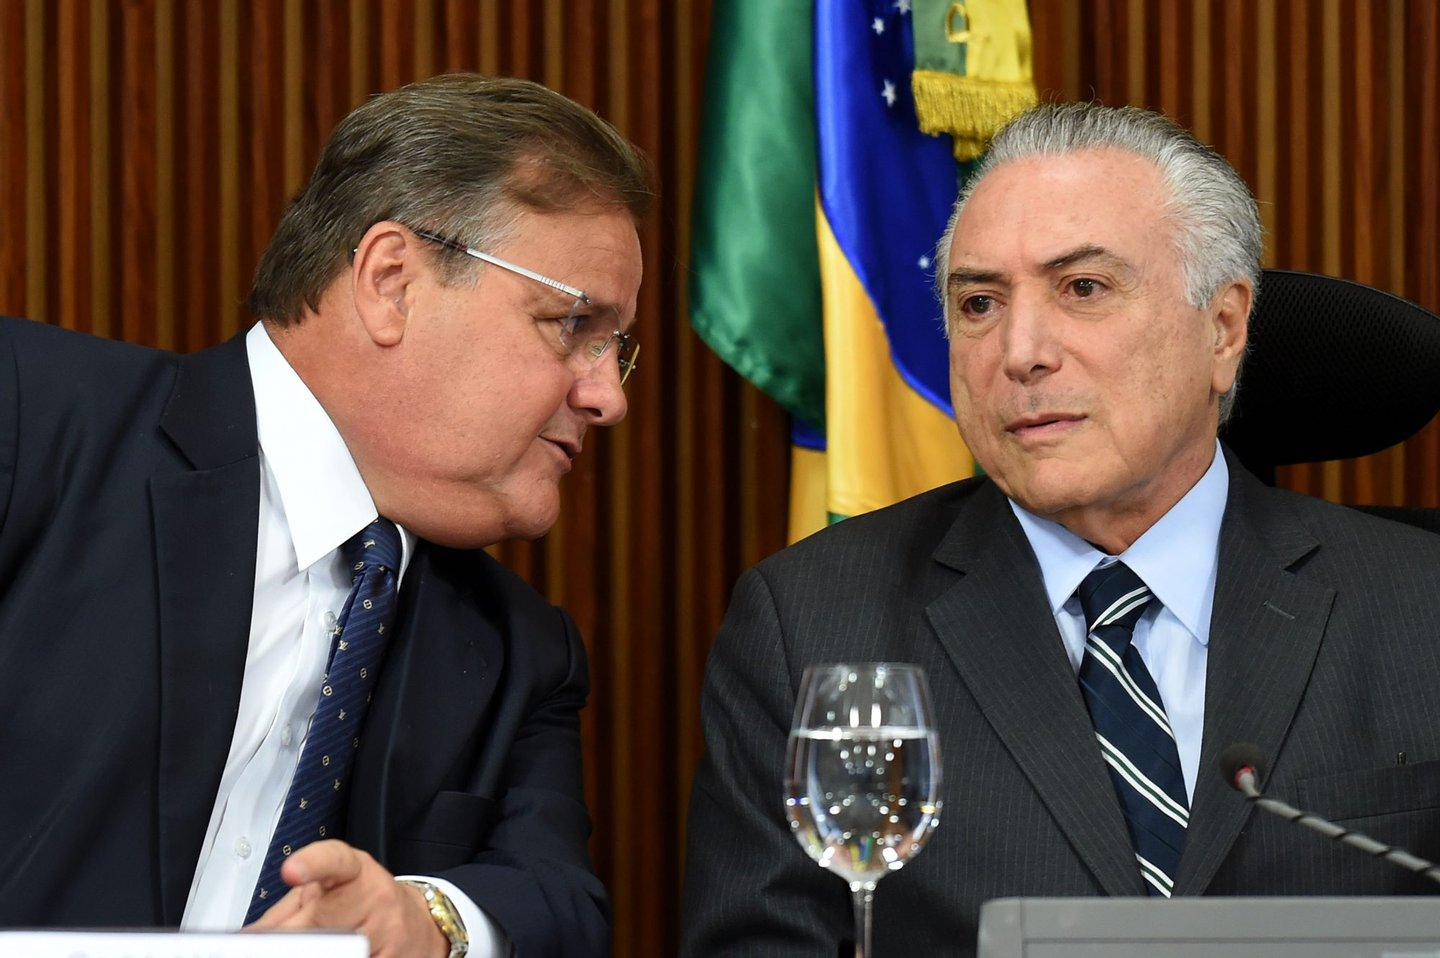 Brazilian acting President Michel Temer (R) and the General Secretary of the Brazilian Presidency Geddel Vieira Lima speak during a meeting with party leaders of the National Congress at Planalto Palace in Brasilia, on June 15, 2016. Temer is seeking support for the approval of a fiscal adjustment that he will send this week to the Congress. / AFP / EVARISTO SA (Photo credit should read EVARISTO SA/AFP/Getty Images)